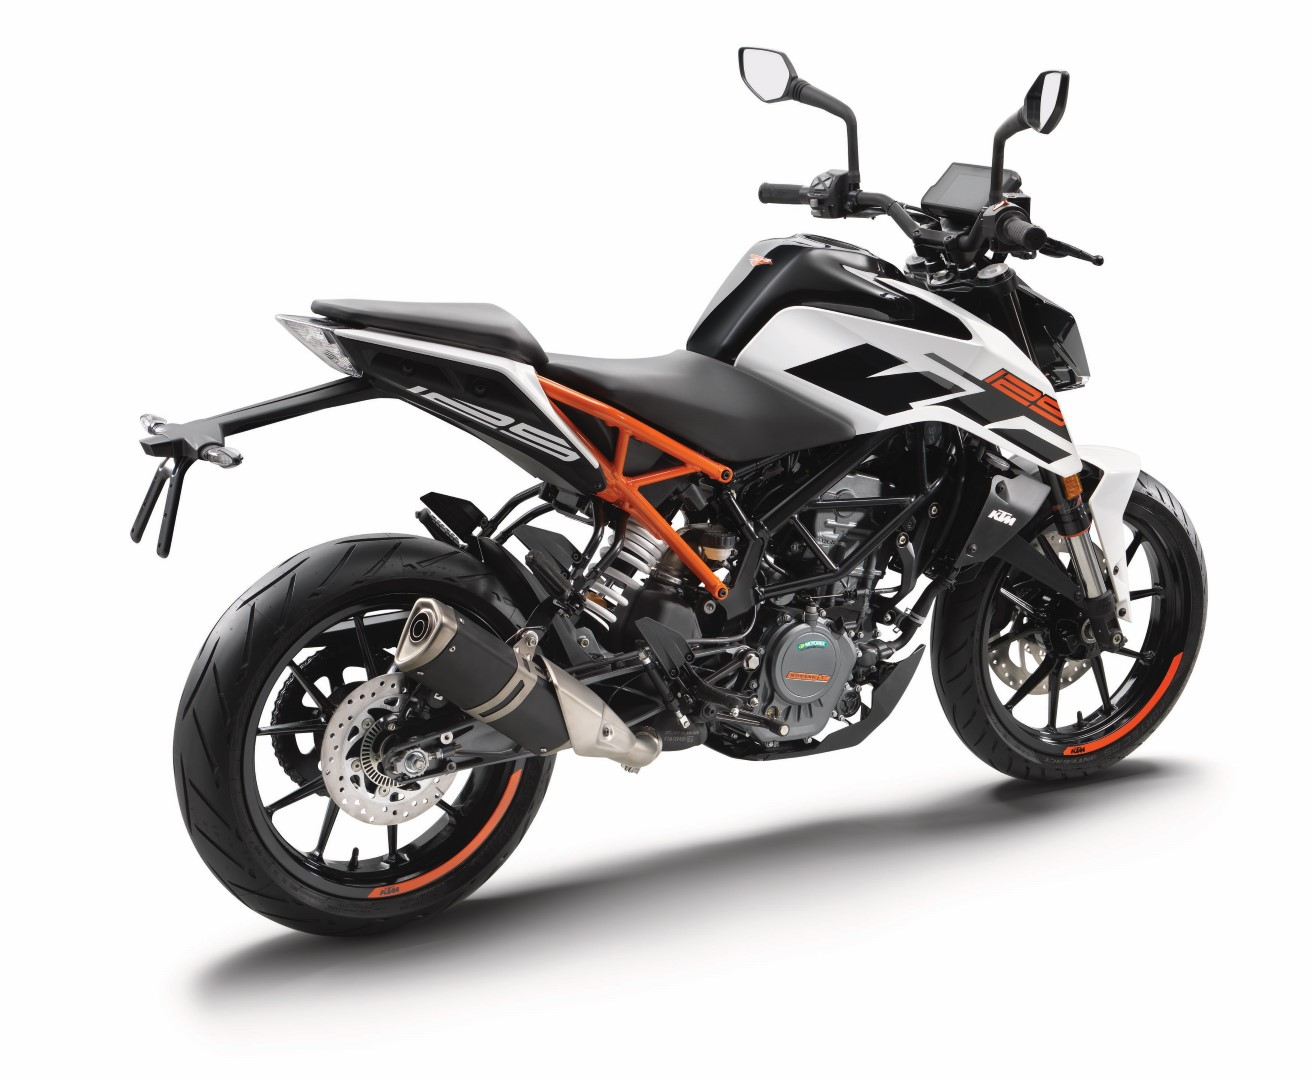 KTM 125 y 390 Duke 2017. Fotos